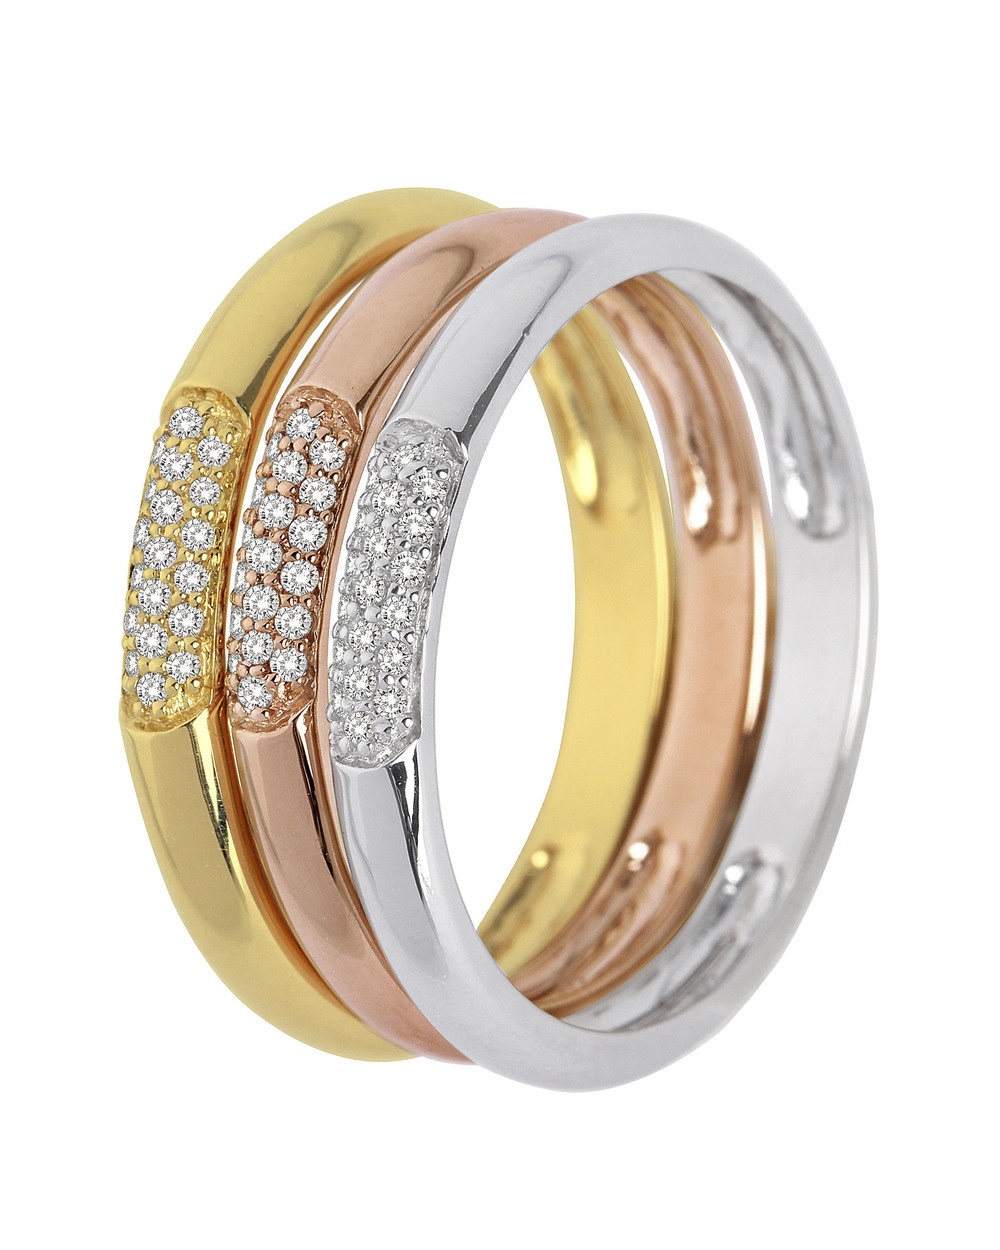 VALERIA, Ring aus 375 Tricolor Gold mit 0 18 Karat Diamanten 56